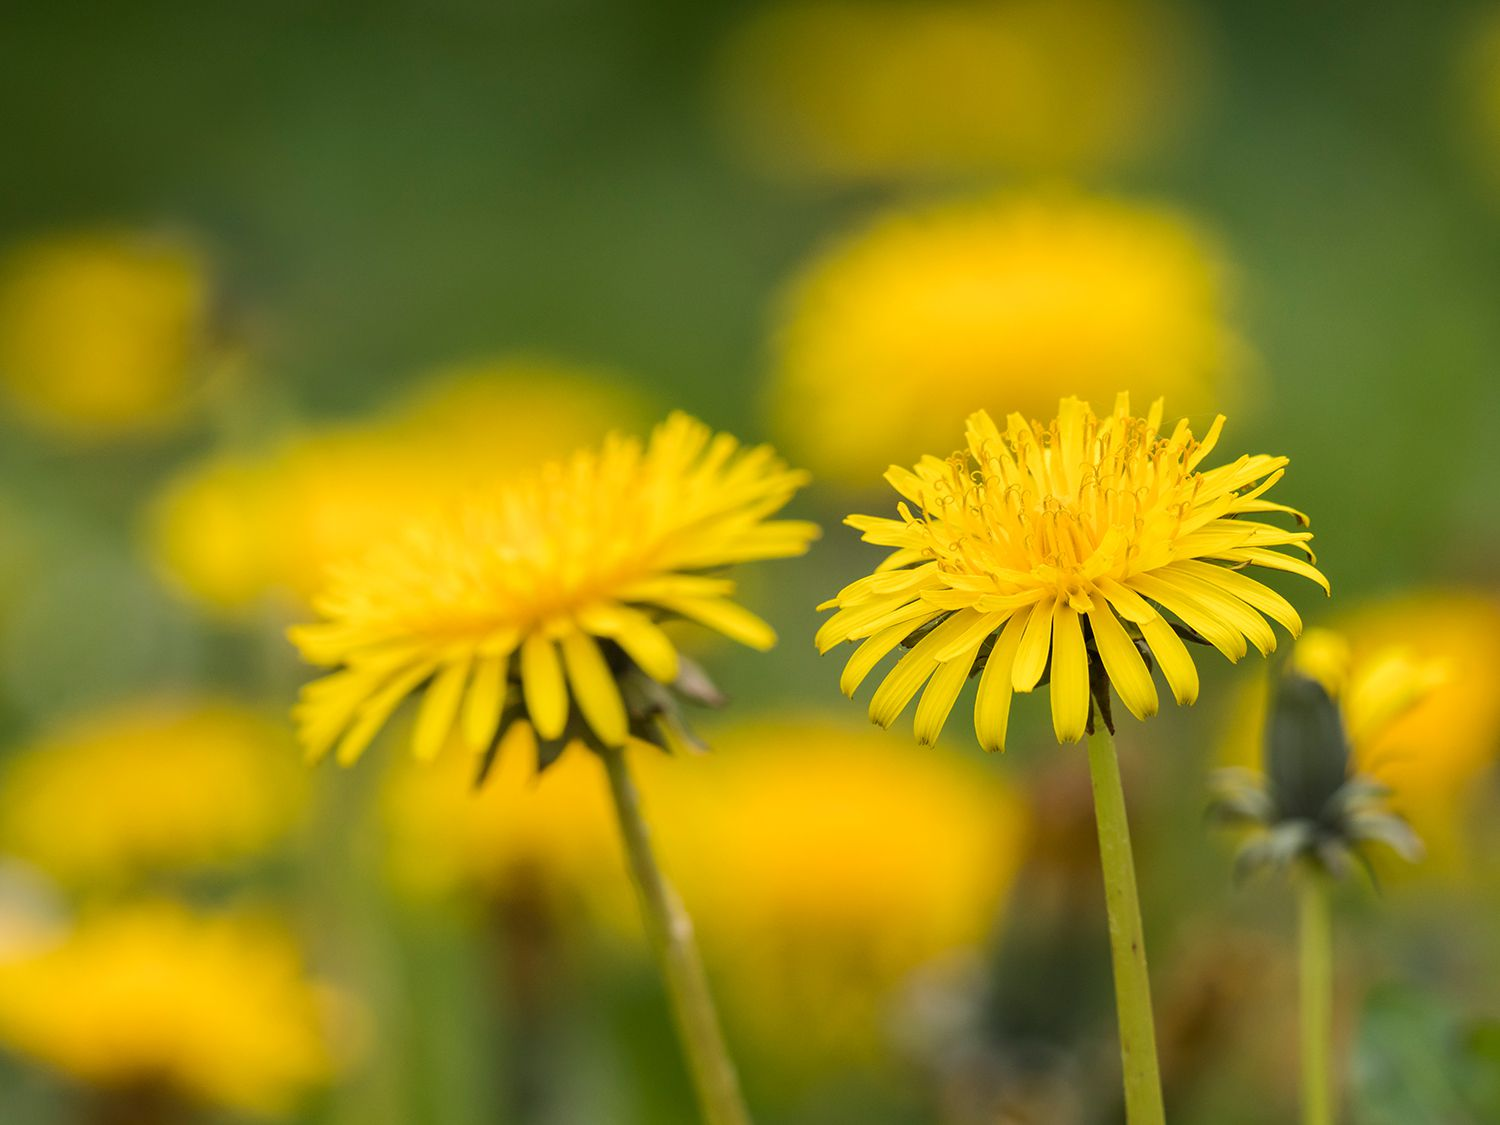 Some dandelion (Taraxacum officinale) flowers in the foreground on a background of more flowers in a meadow